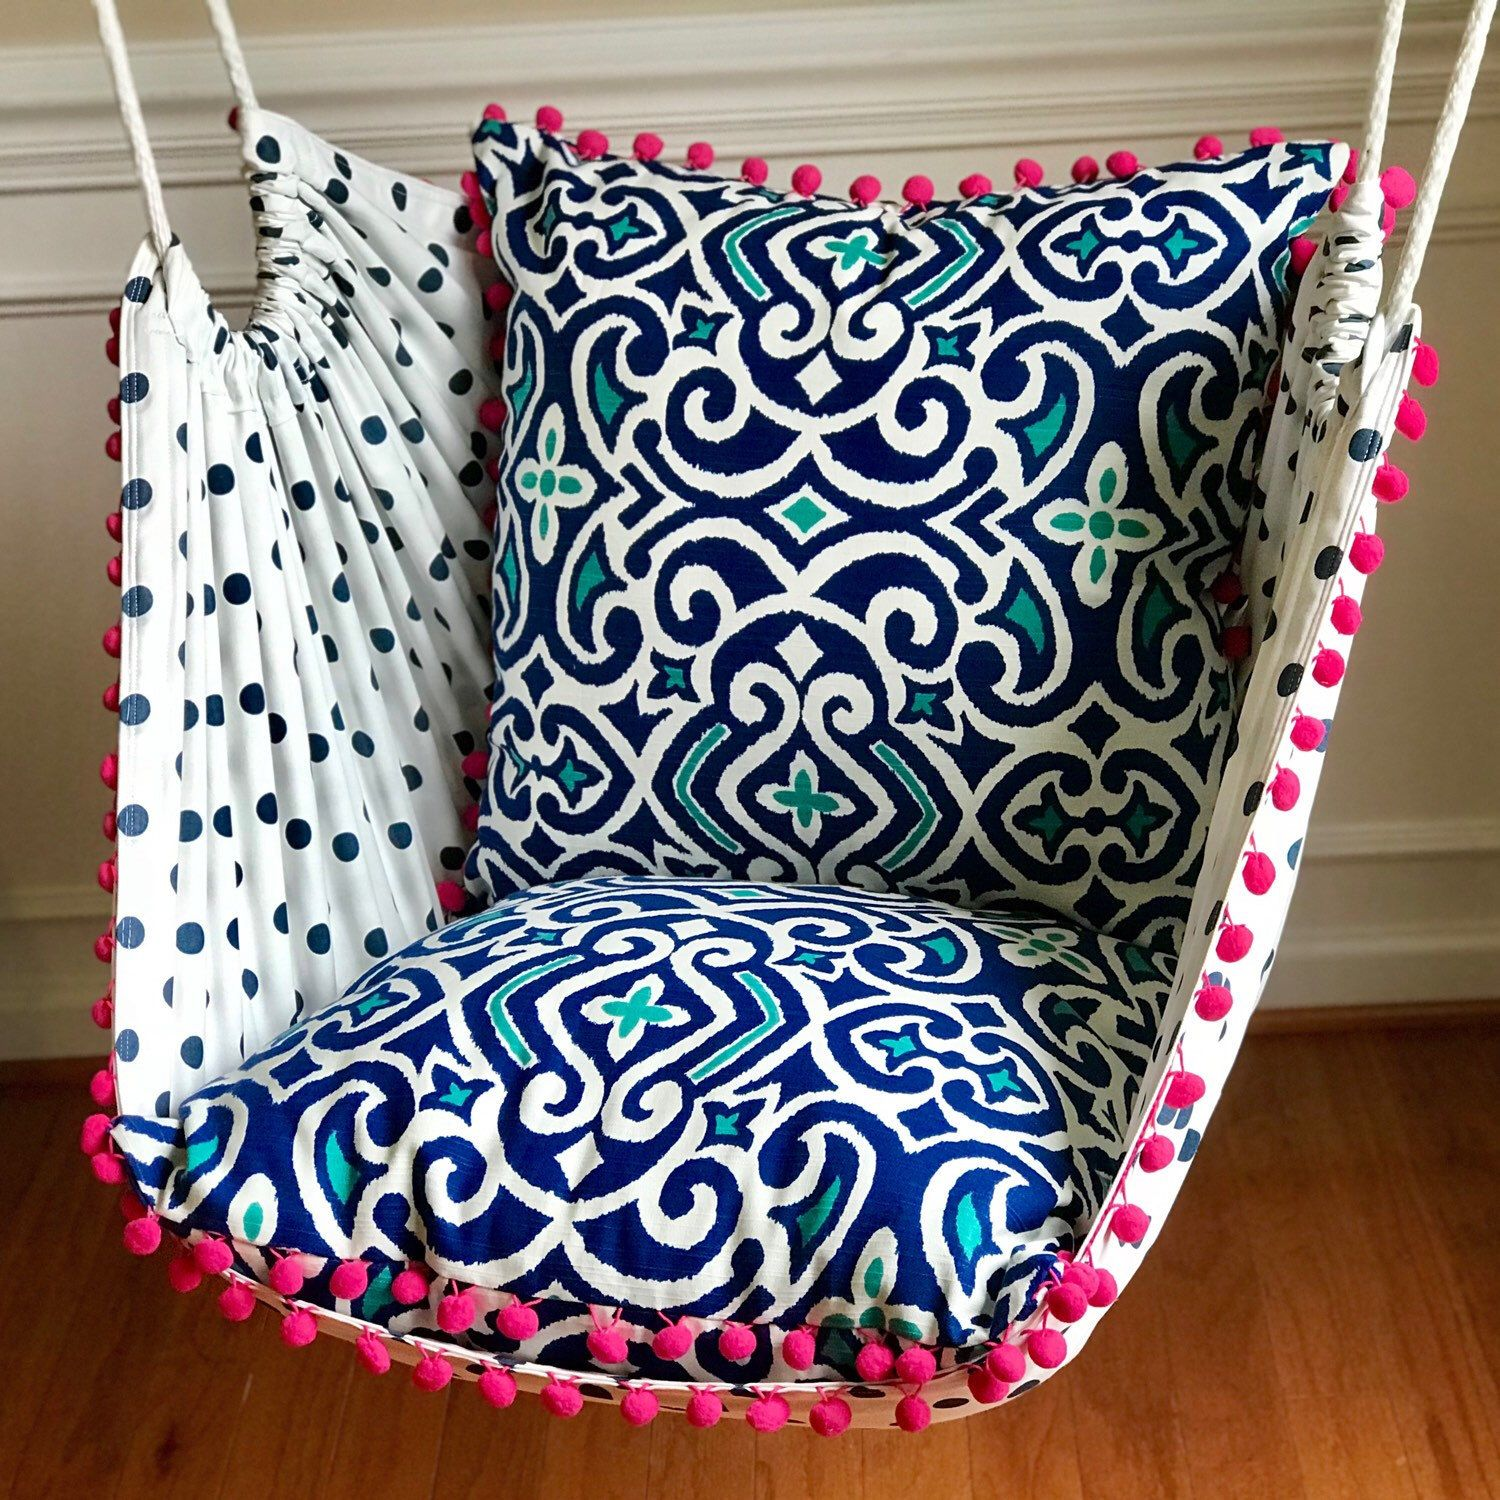 UrbanWoodworkCo shared a new photo on Etsy is part of Patterned chair - Product Details✨  Get ready to kick back and lounge in style with these amazingly comfortable and durable hammock chairs  Urban Woodwork Company is known for having by far the most beautiful and stylish hammock chairs on the market  Custom made to order from durable upholstery weight fabrics of